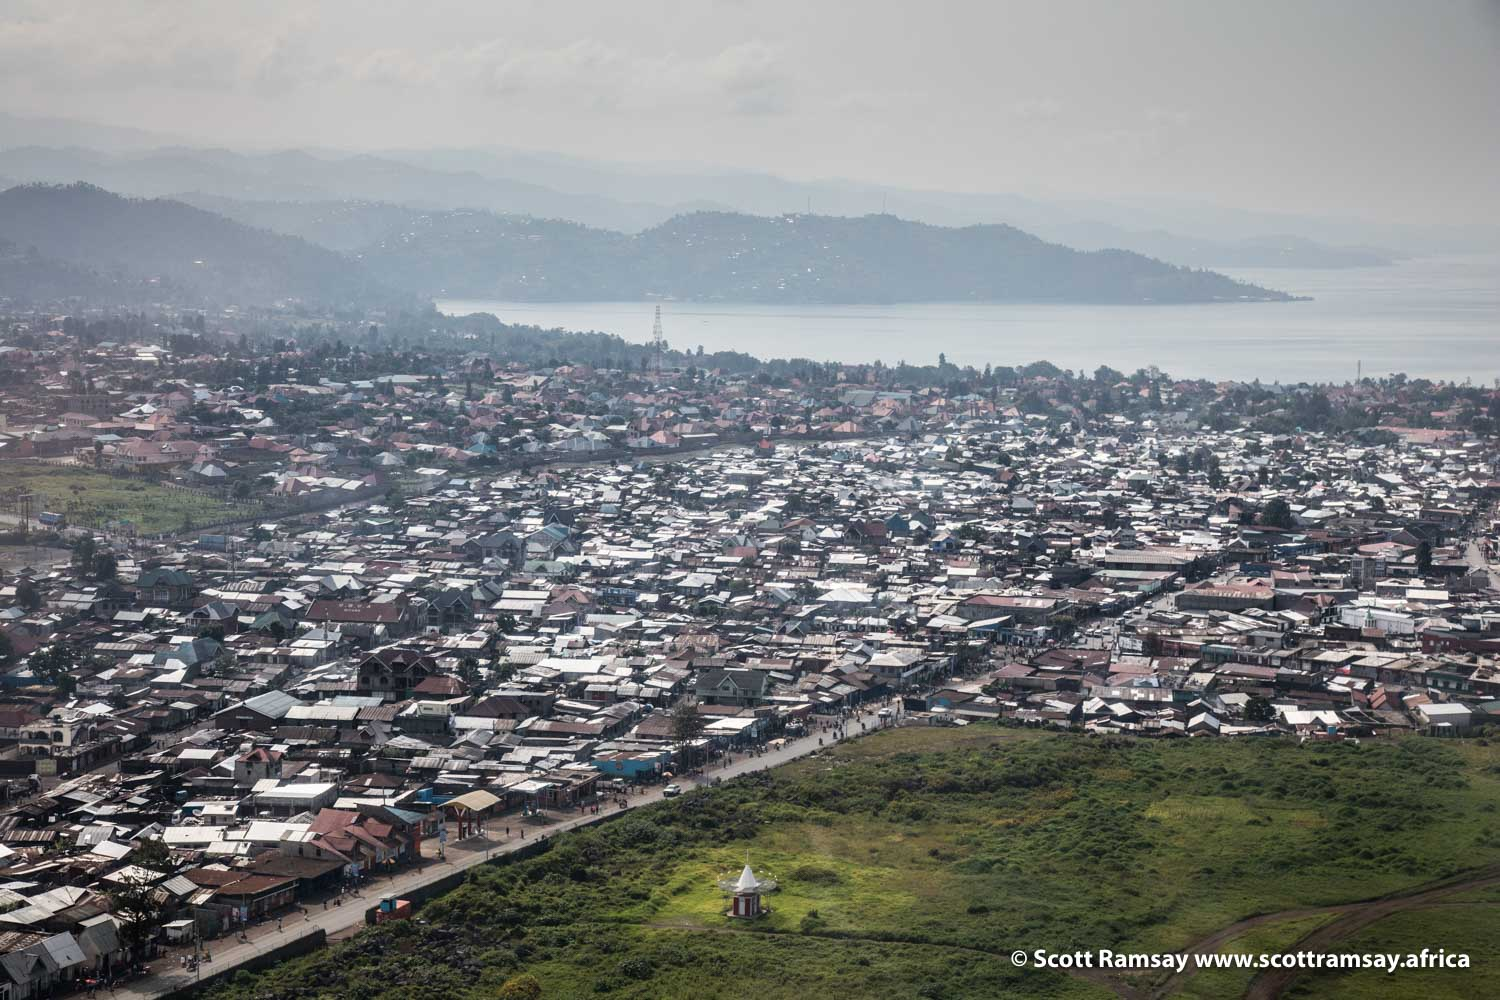 Where most trips to Virunga National Park begin. This is Goma, a city on the edge of Lake Kivu, on the border between Democratic Republic of Congo and Rwanda.